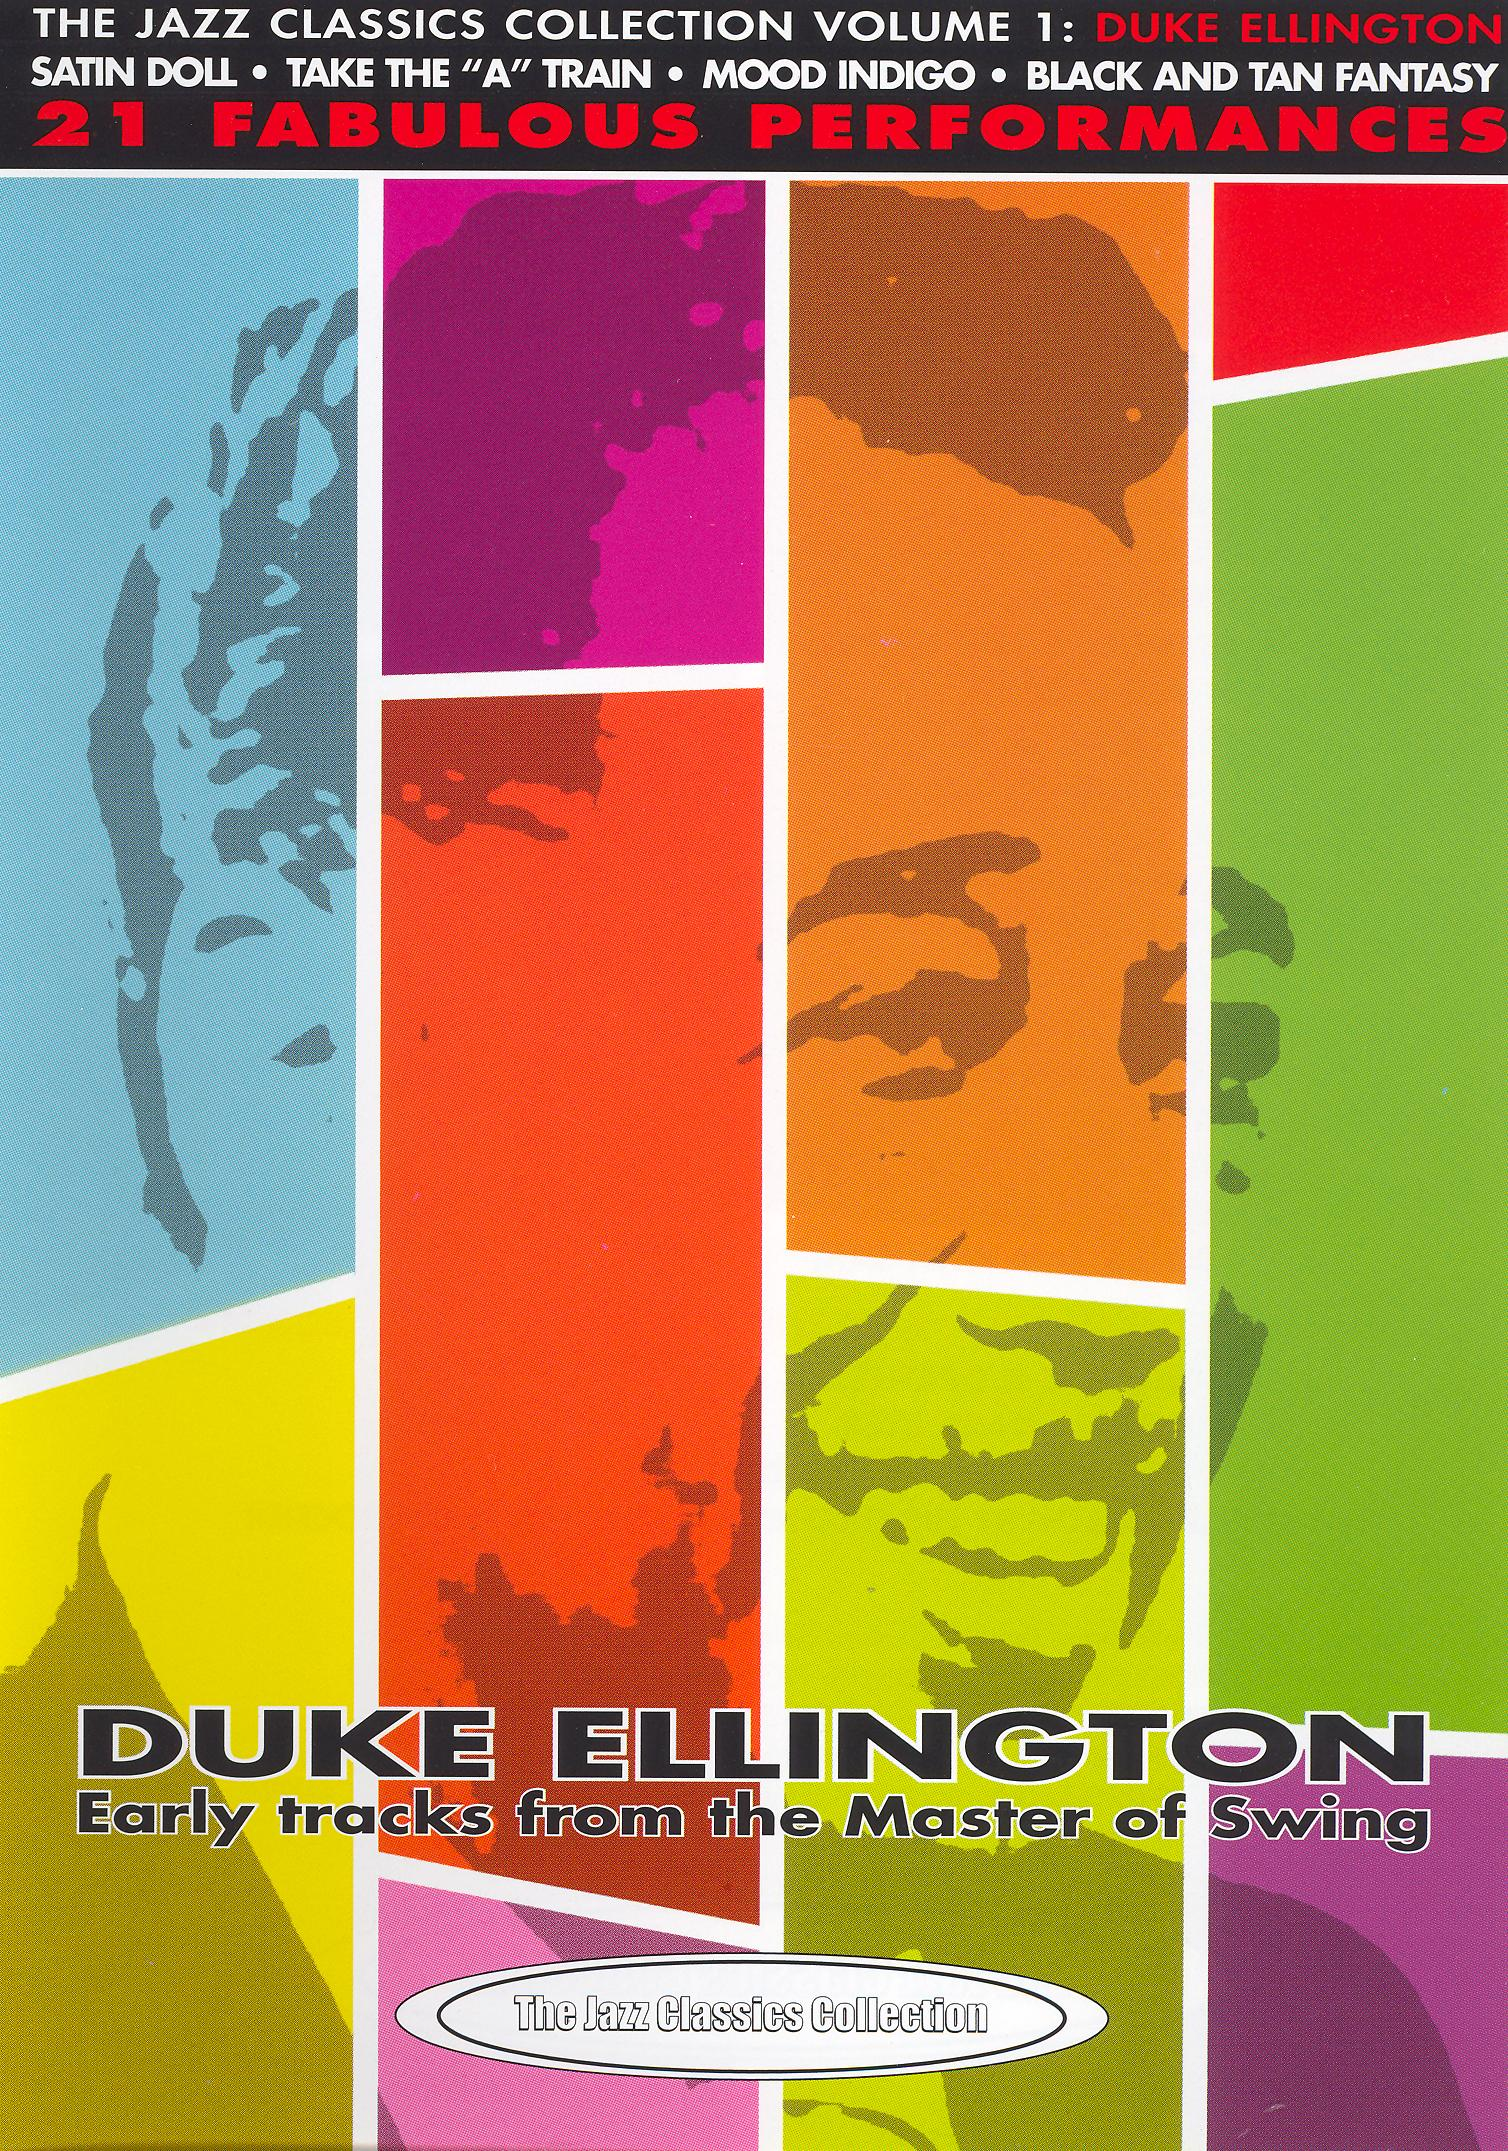 Jazz Classics Collection, Vol. 1: Duke Ellington - Early Tracks from the Master of Swing